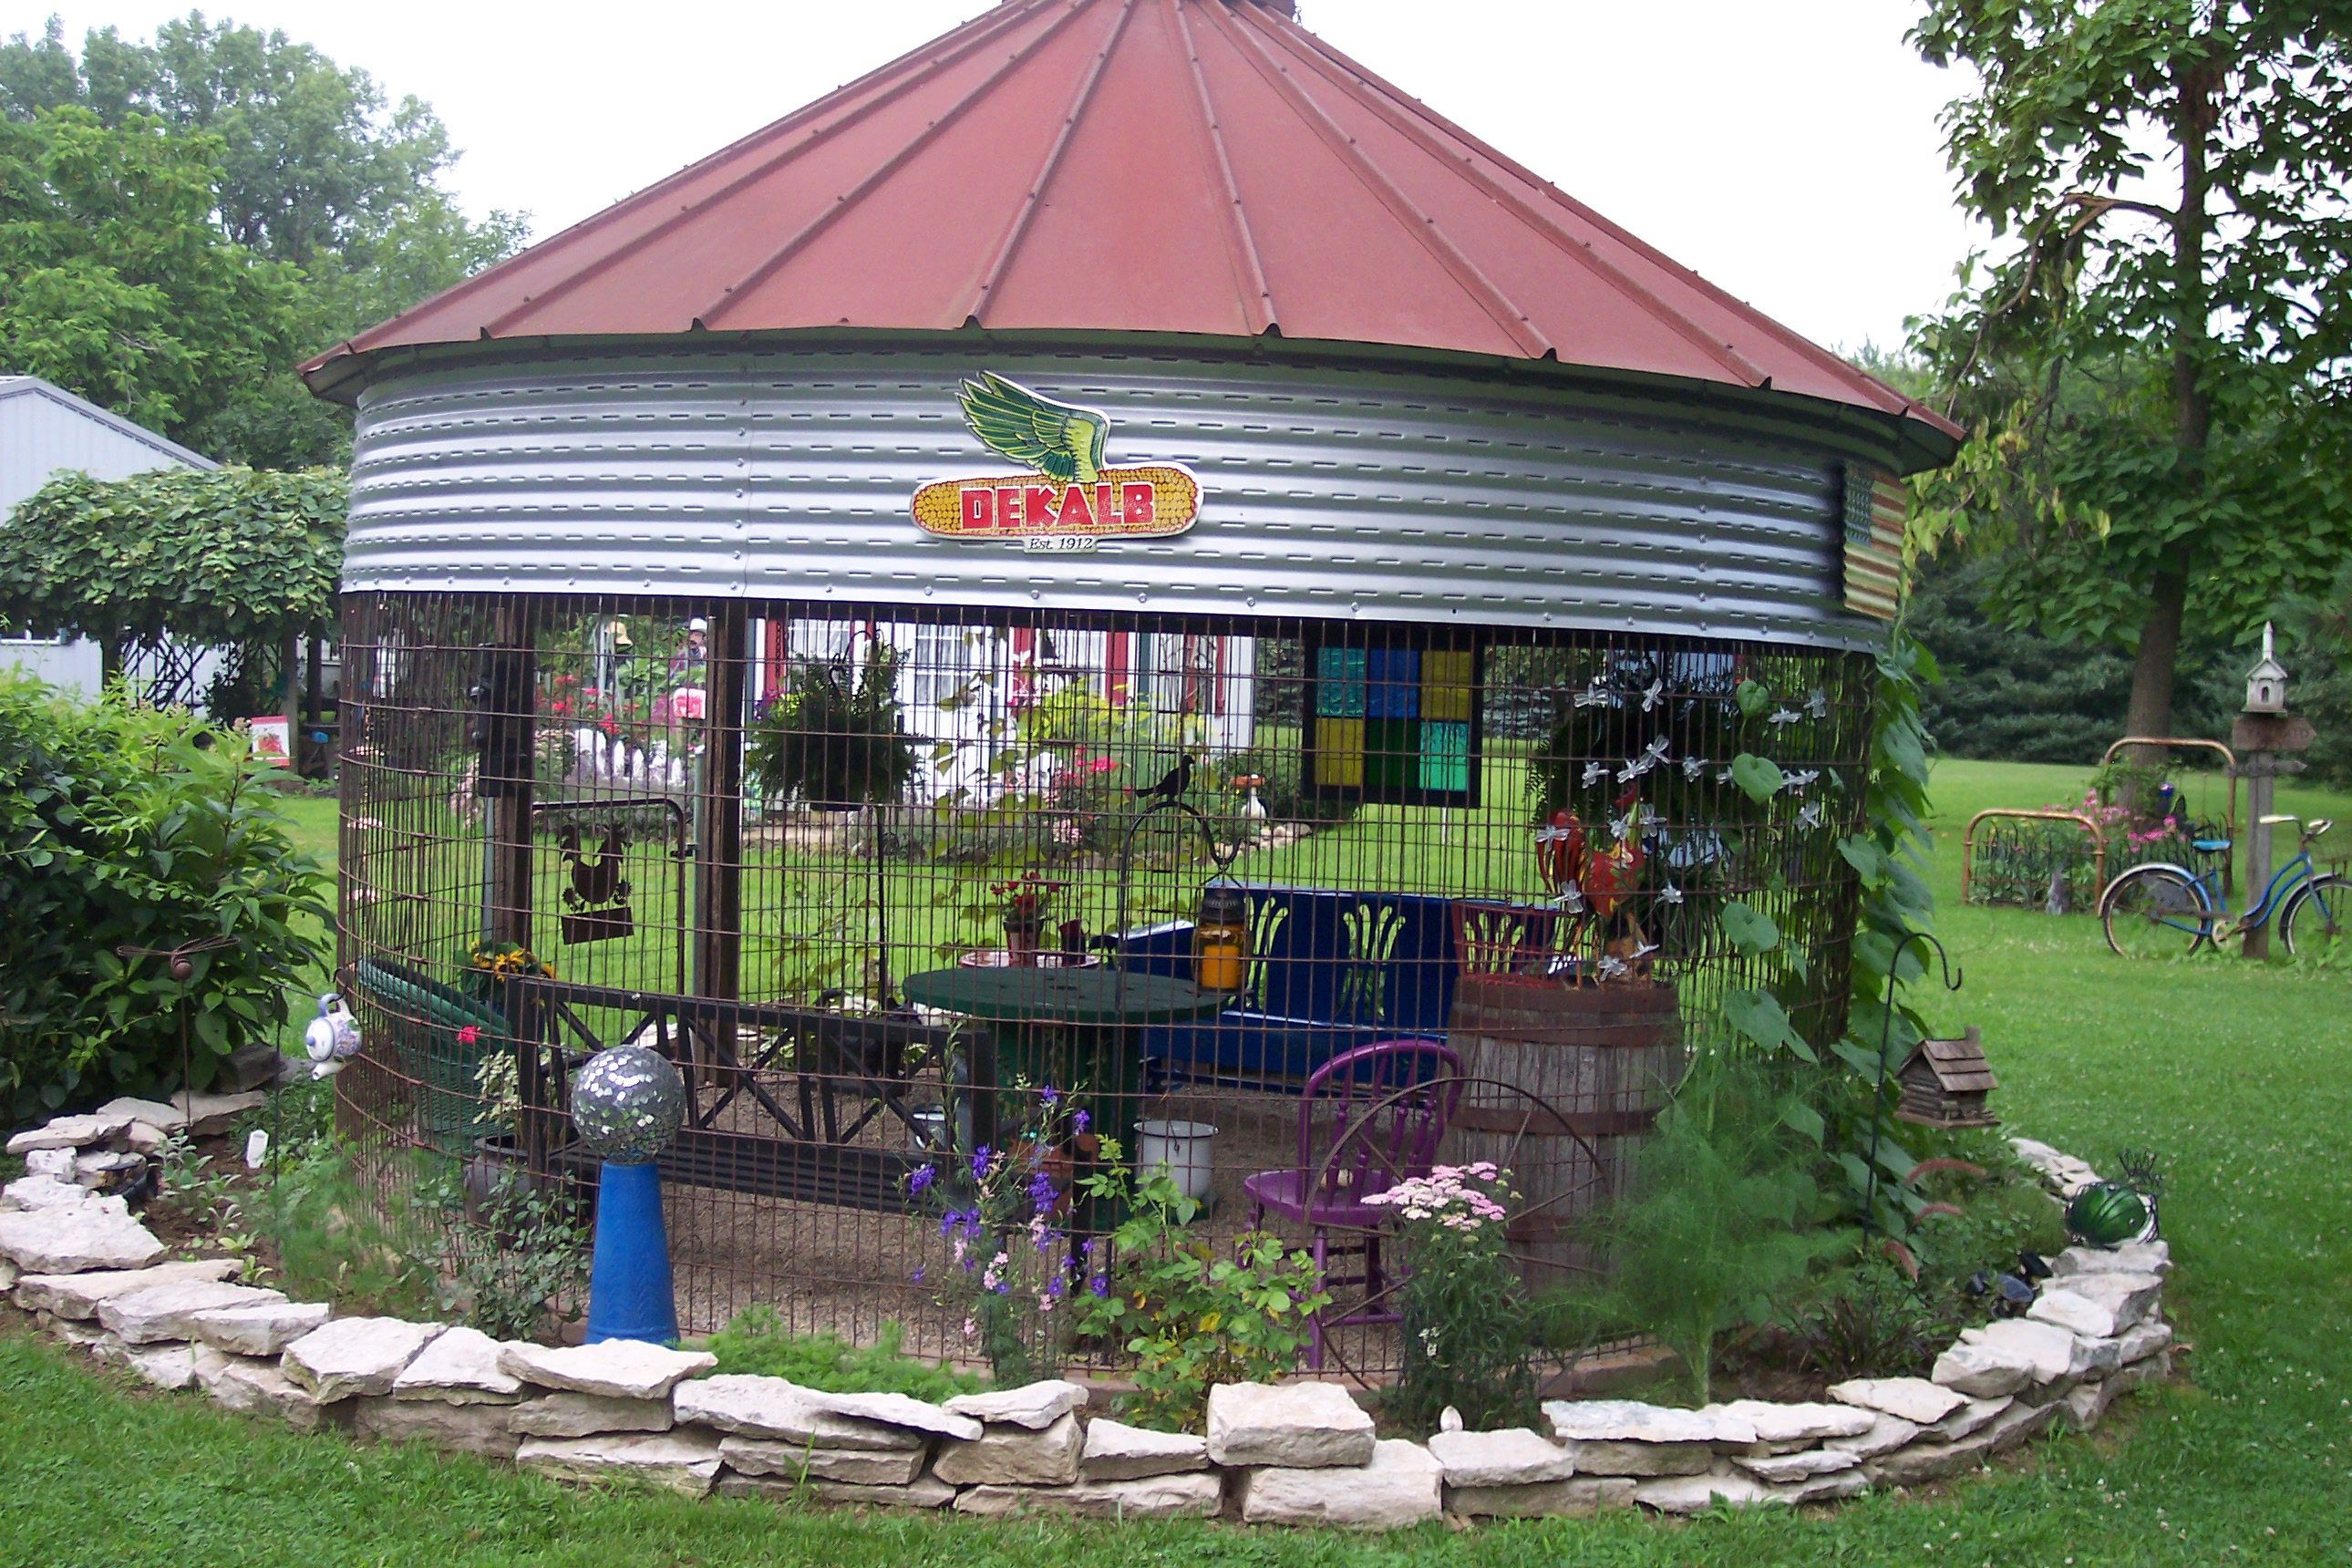 The Corn Crib Gazebo Garden Rustic Repurposing Garden